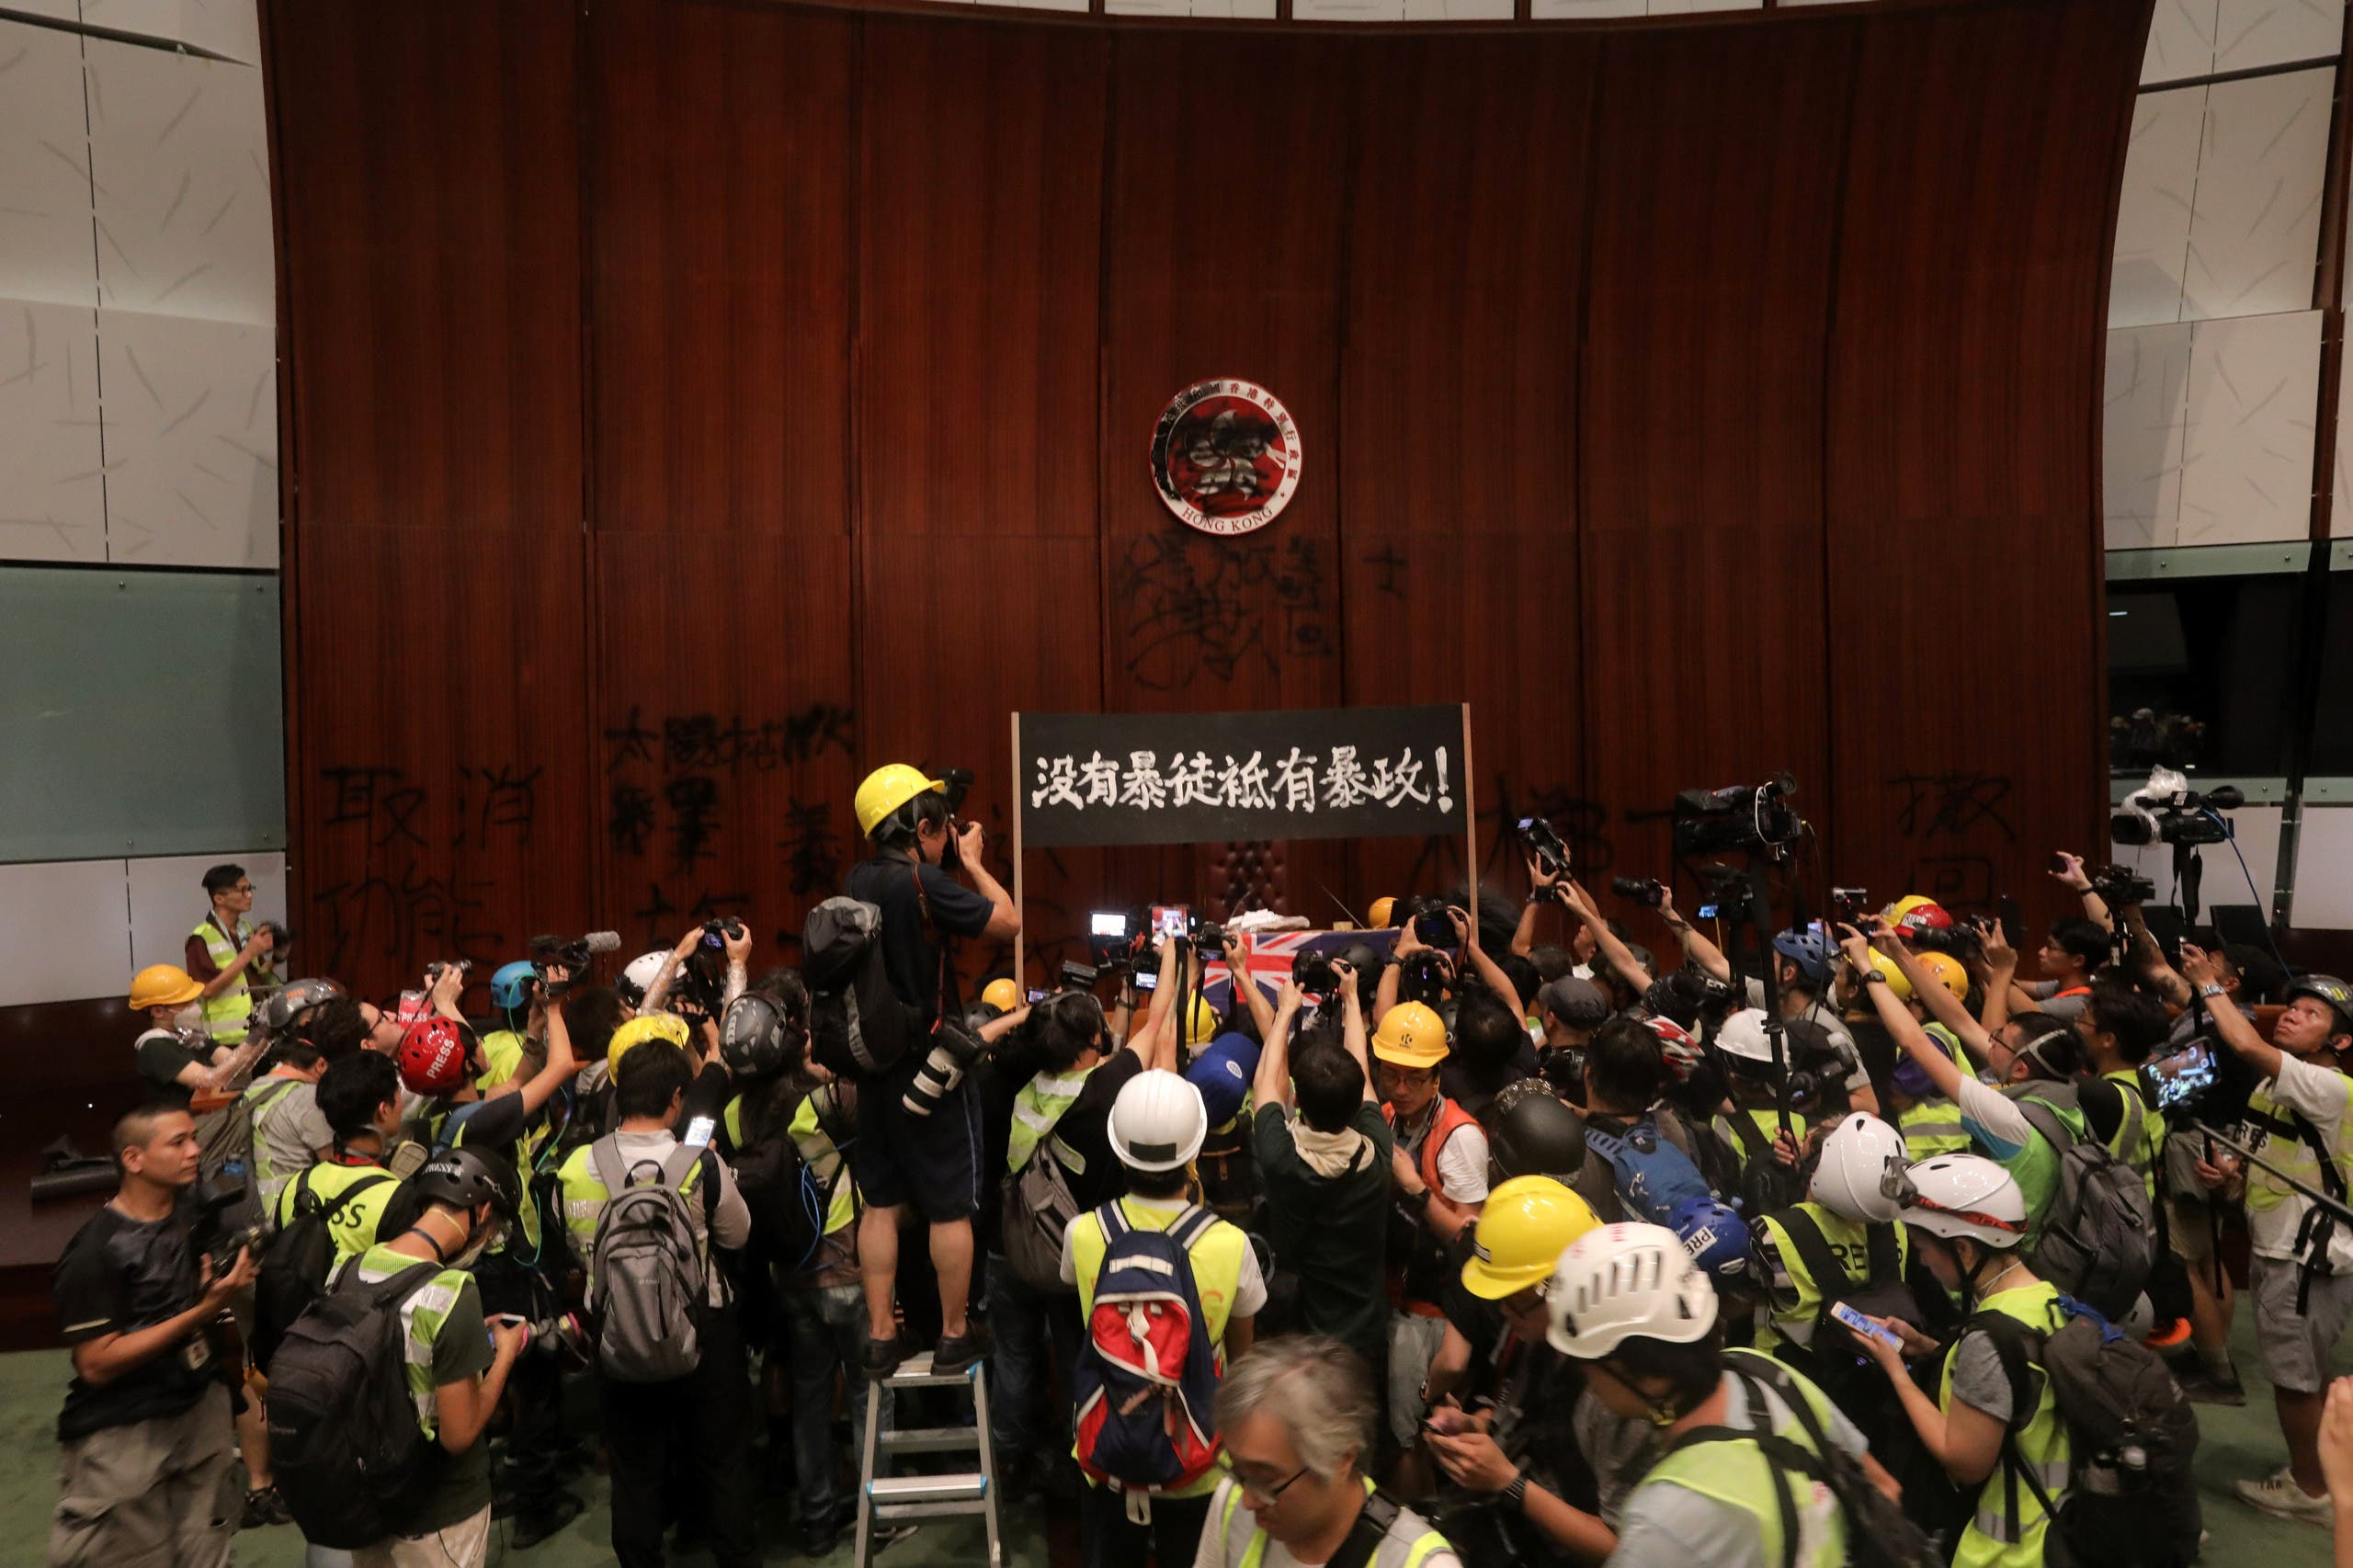 Protesters hold up a sign after they broke into the parliament chamber of the government headquarters in Hong Kong on the 22nd anniversary of the city's handover from Britain to China. (AFP)